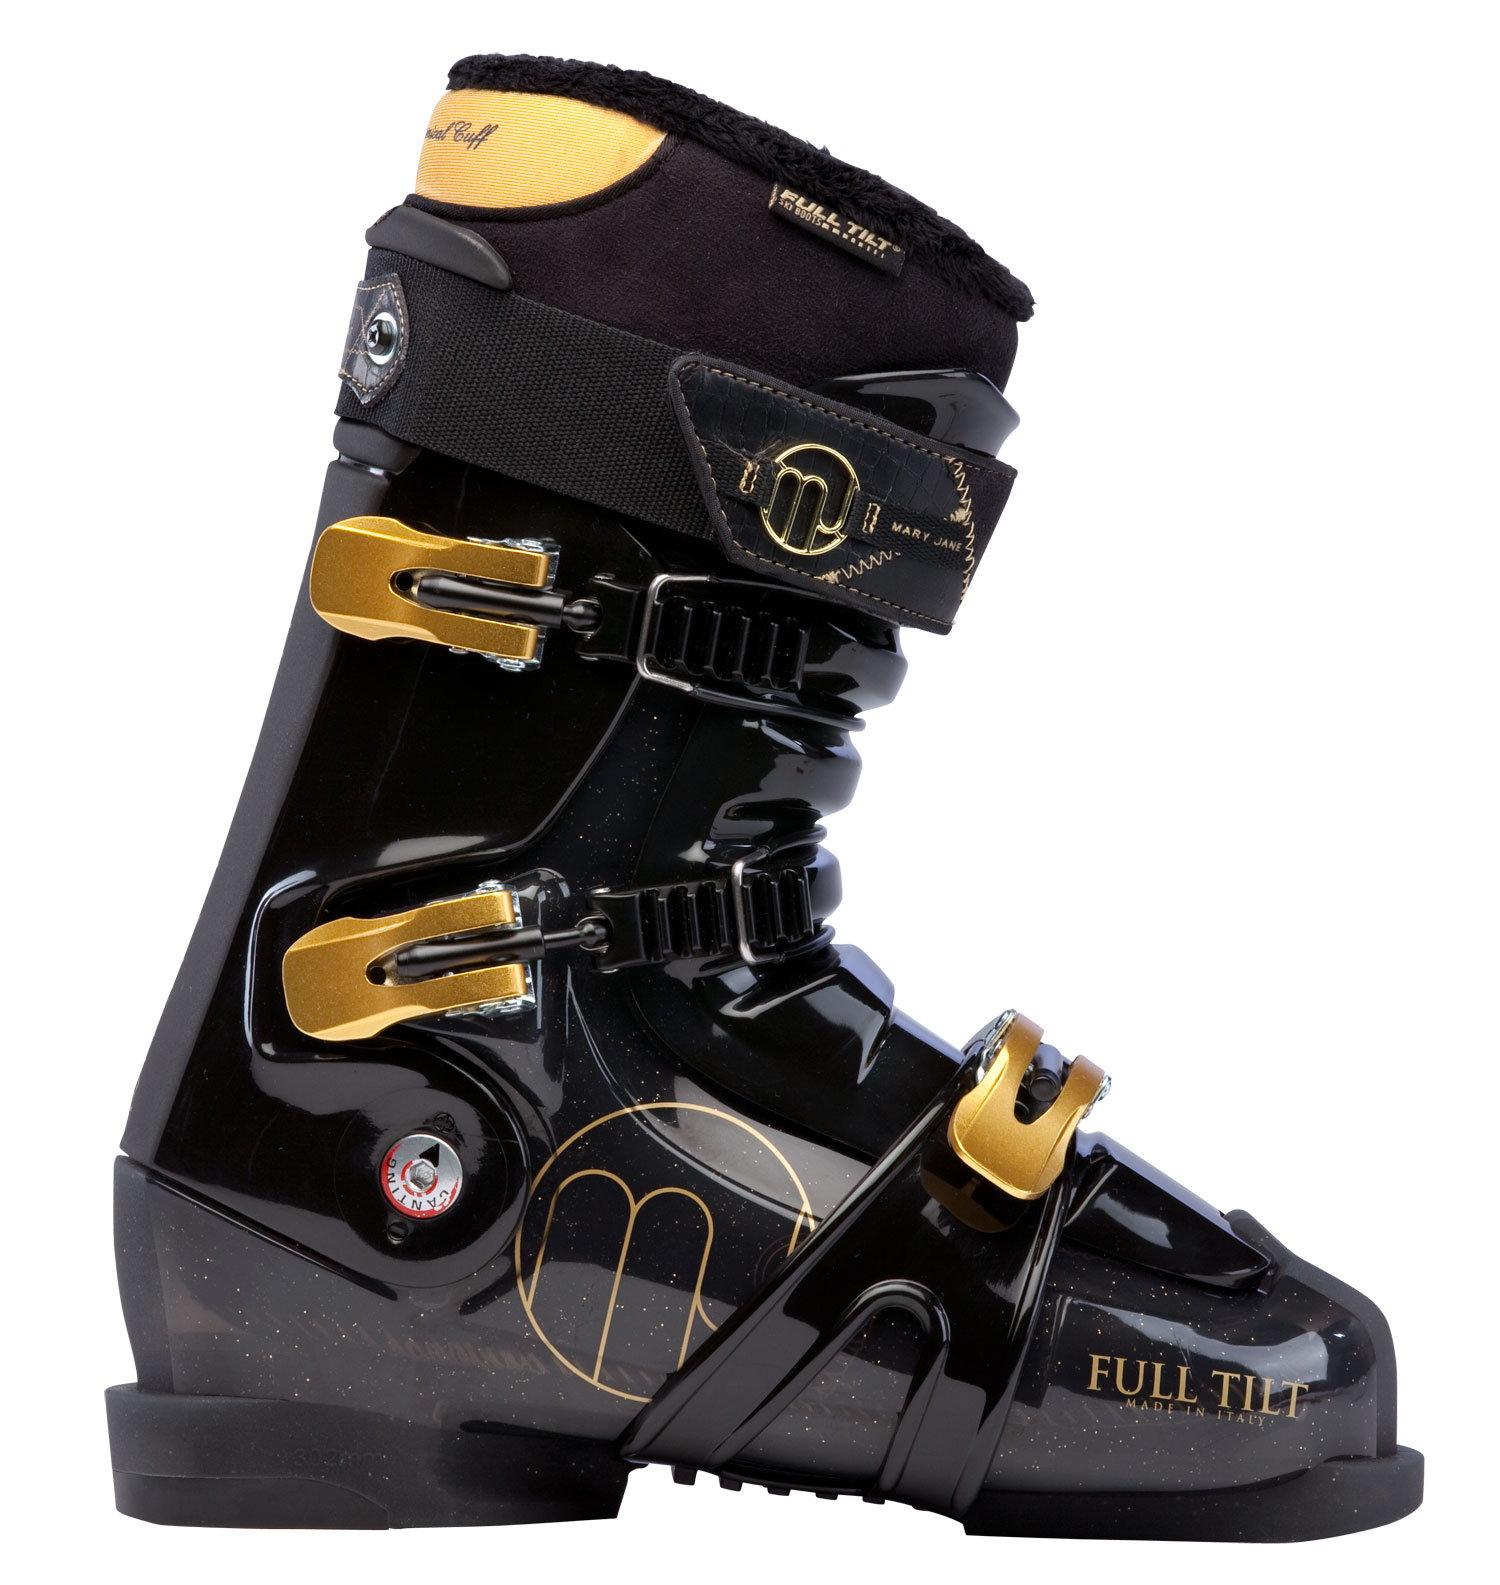 Ski Key Features of the Full Tilt Mary Jane Ski Boots: Shell: FTI Influence Last Width: 102mm Women's Fit Tongue (10 = Stiffest Flex): Interchangeable 4 Flex / 5 Ribs Weight g (sizes M 27, W 25): 1748 Foot Board: Active Sole: Replaceable Rubber Small Heel Buckles: 3 Aluminum Macro Ladder + Micro Closure System: 2 Upper Cables 1 Lower Wrap Strap Forward Cant Adjustment: n/a Lateral Cant Adjustment: 3mm Toe / Heal Height: 18.5mm / 34mm Cuff: Free Hinging Women's Fit Quickfit Liner Model: WOMEN'S PLUSH Open Cell Foam: 8mm Soft Density Intuition Foam: 2mm Regular Density Intuition Foam: 7mm Moldable Foam: Intuition Wide Toe: Wide Toe - $279.95